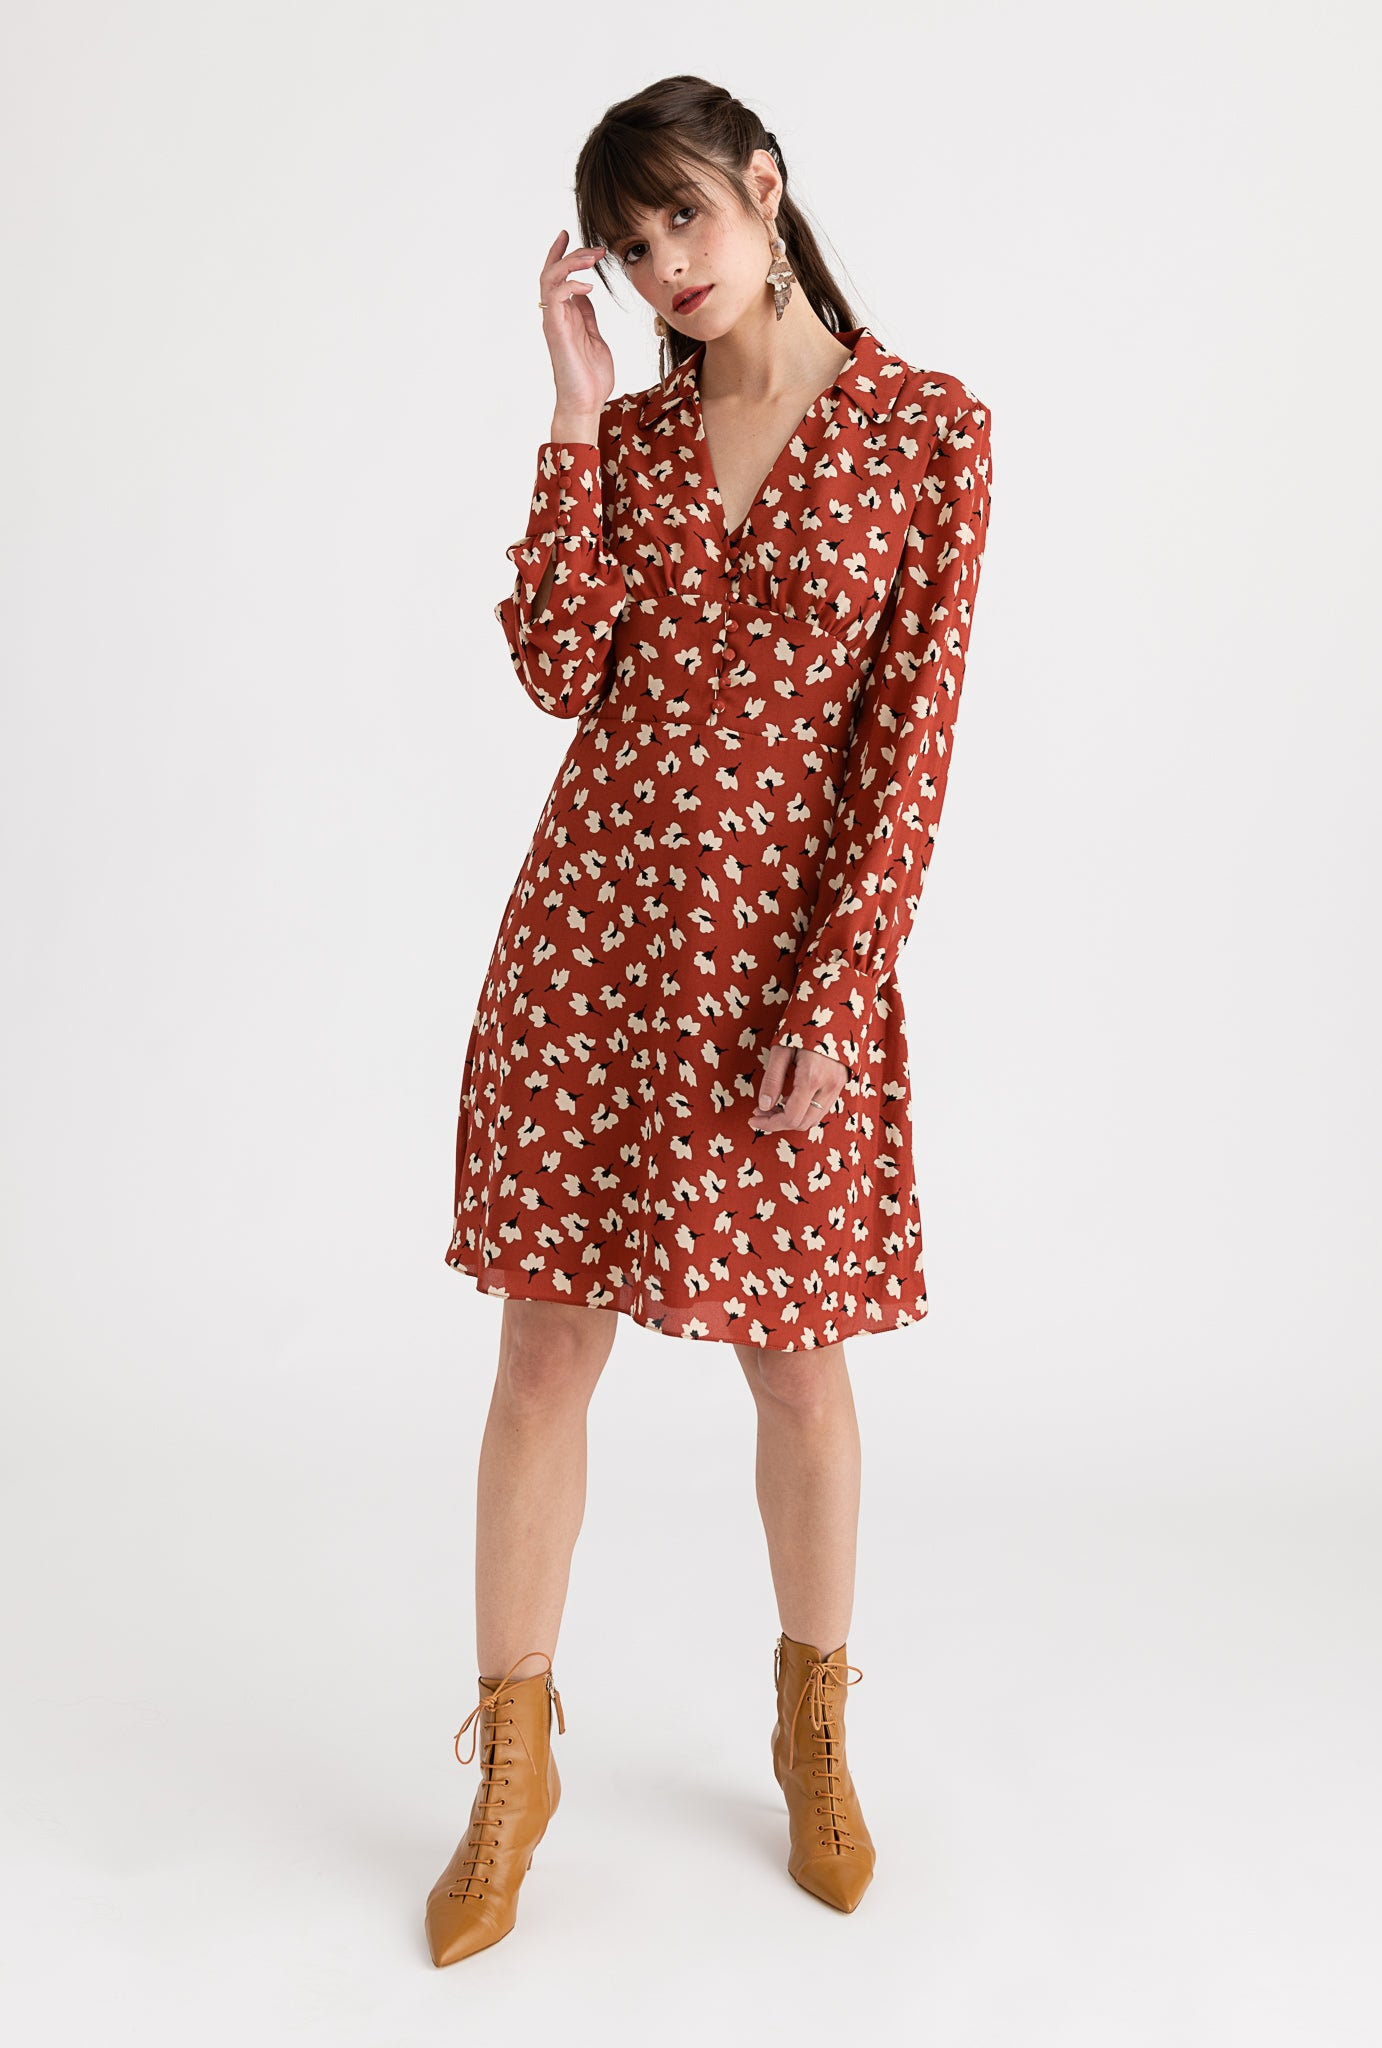 Ada Dress - Rusty Floral - V-neck floral midi dress - Petite Studio NYC